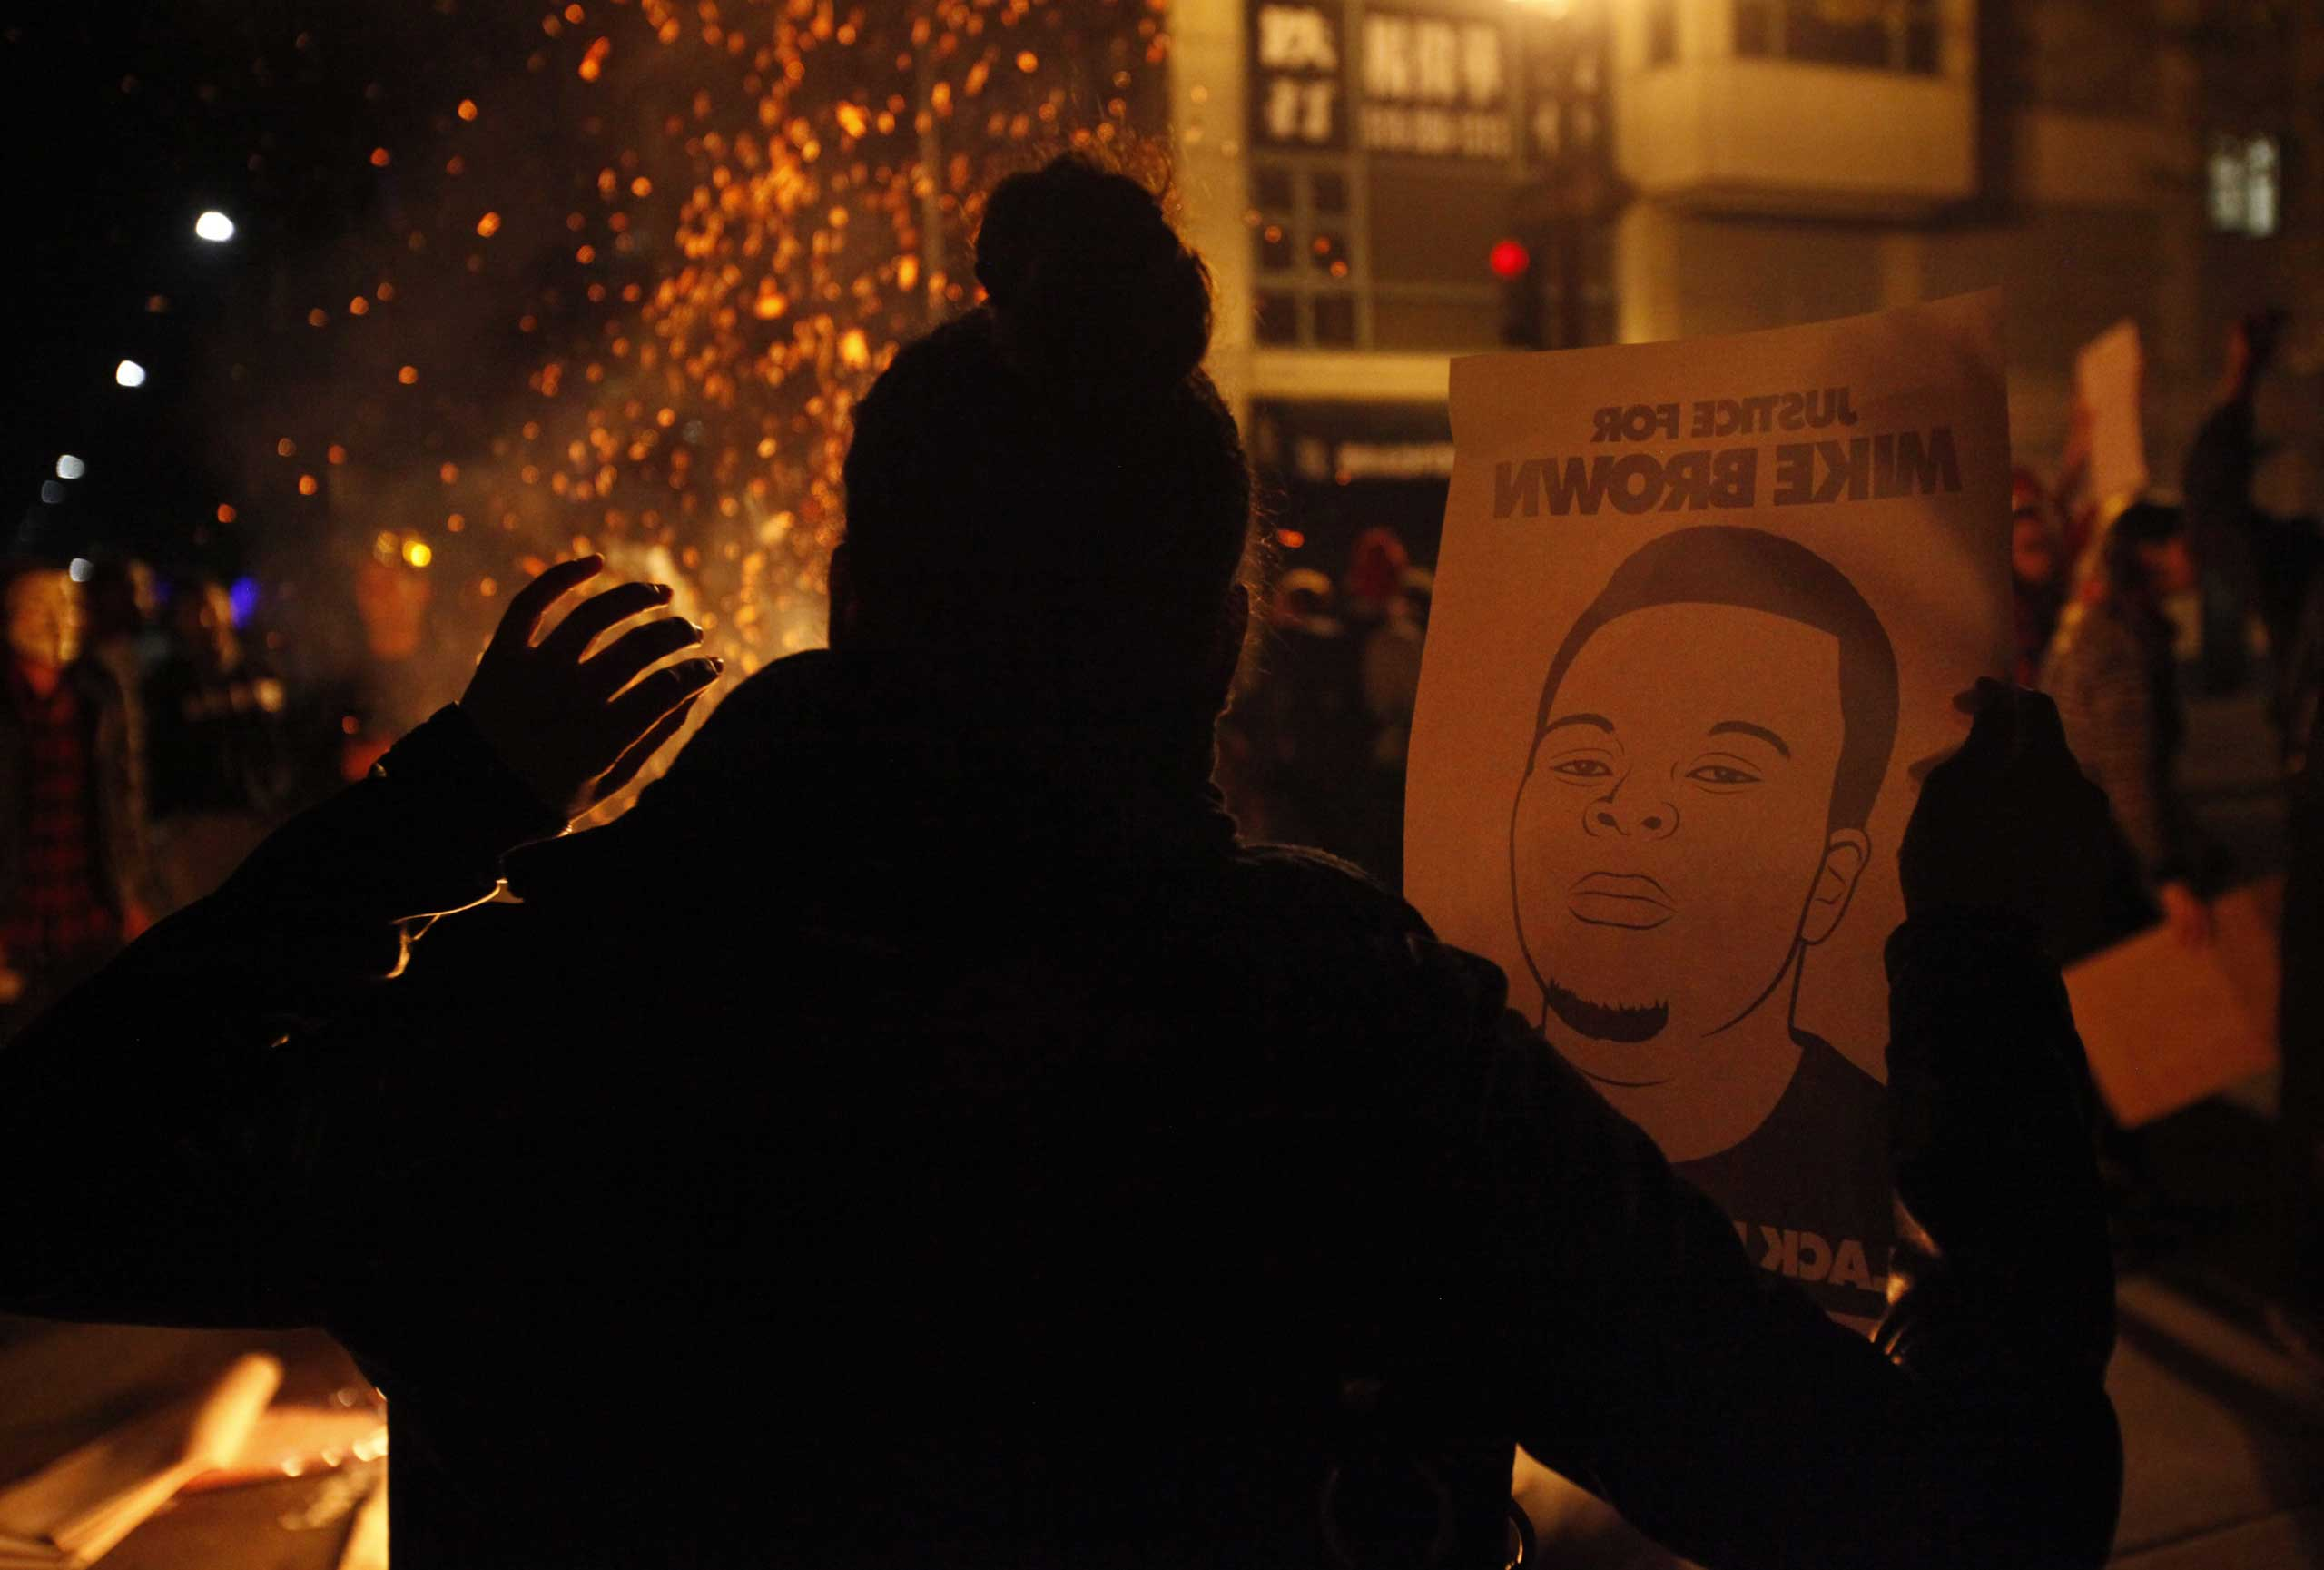 Protesters hold up their hands in protest in Oakland, Calif. on Nov. 25, 2014.